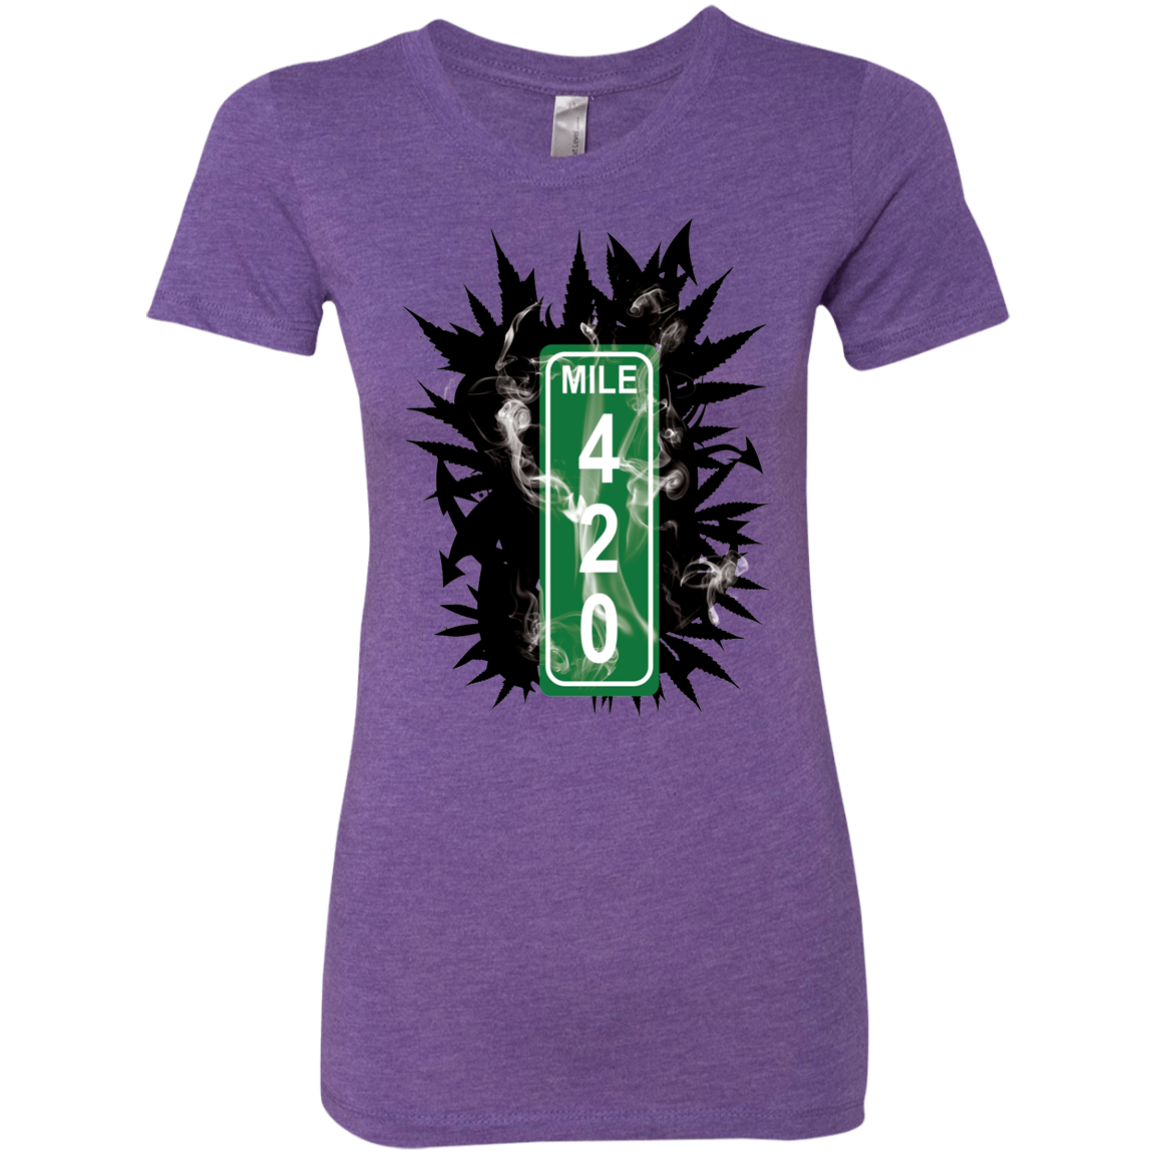 420 Smoke - Next Level tri-blend - Herban Apparel